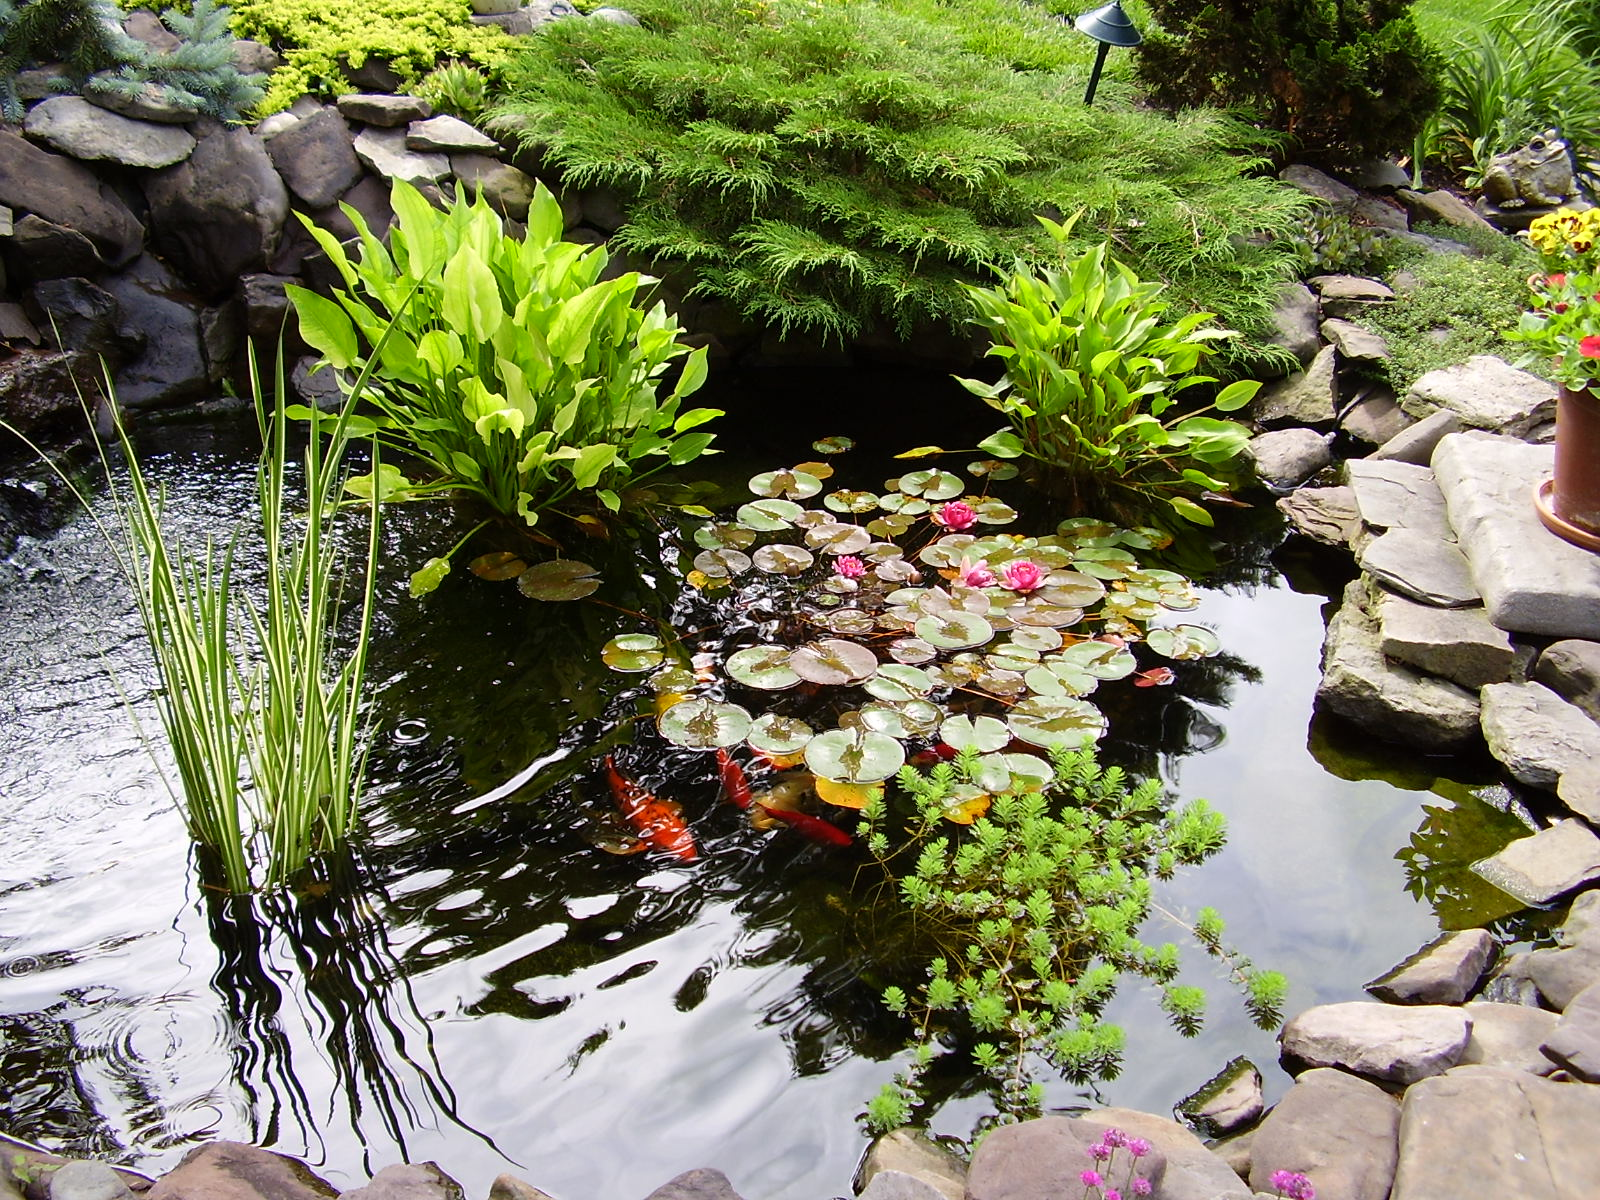 Sonyquevedoclasesdeplantascolombianas for Planter fish pond